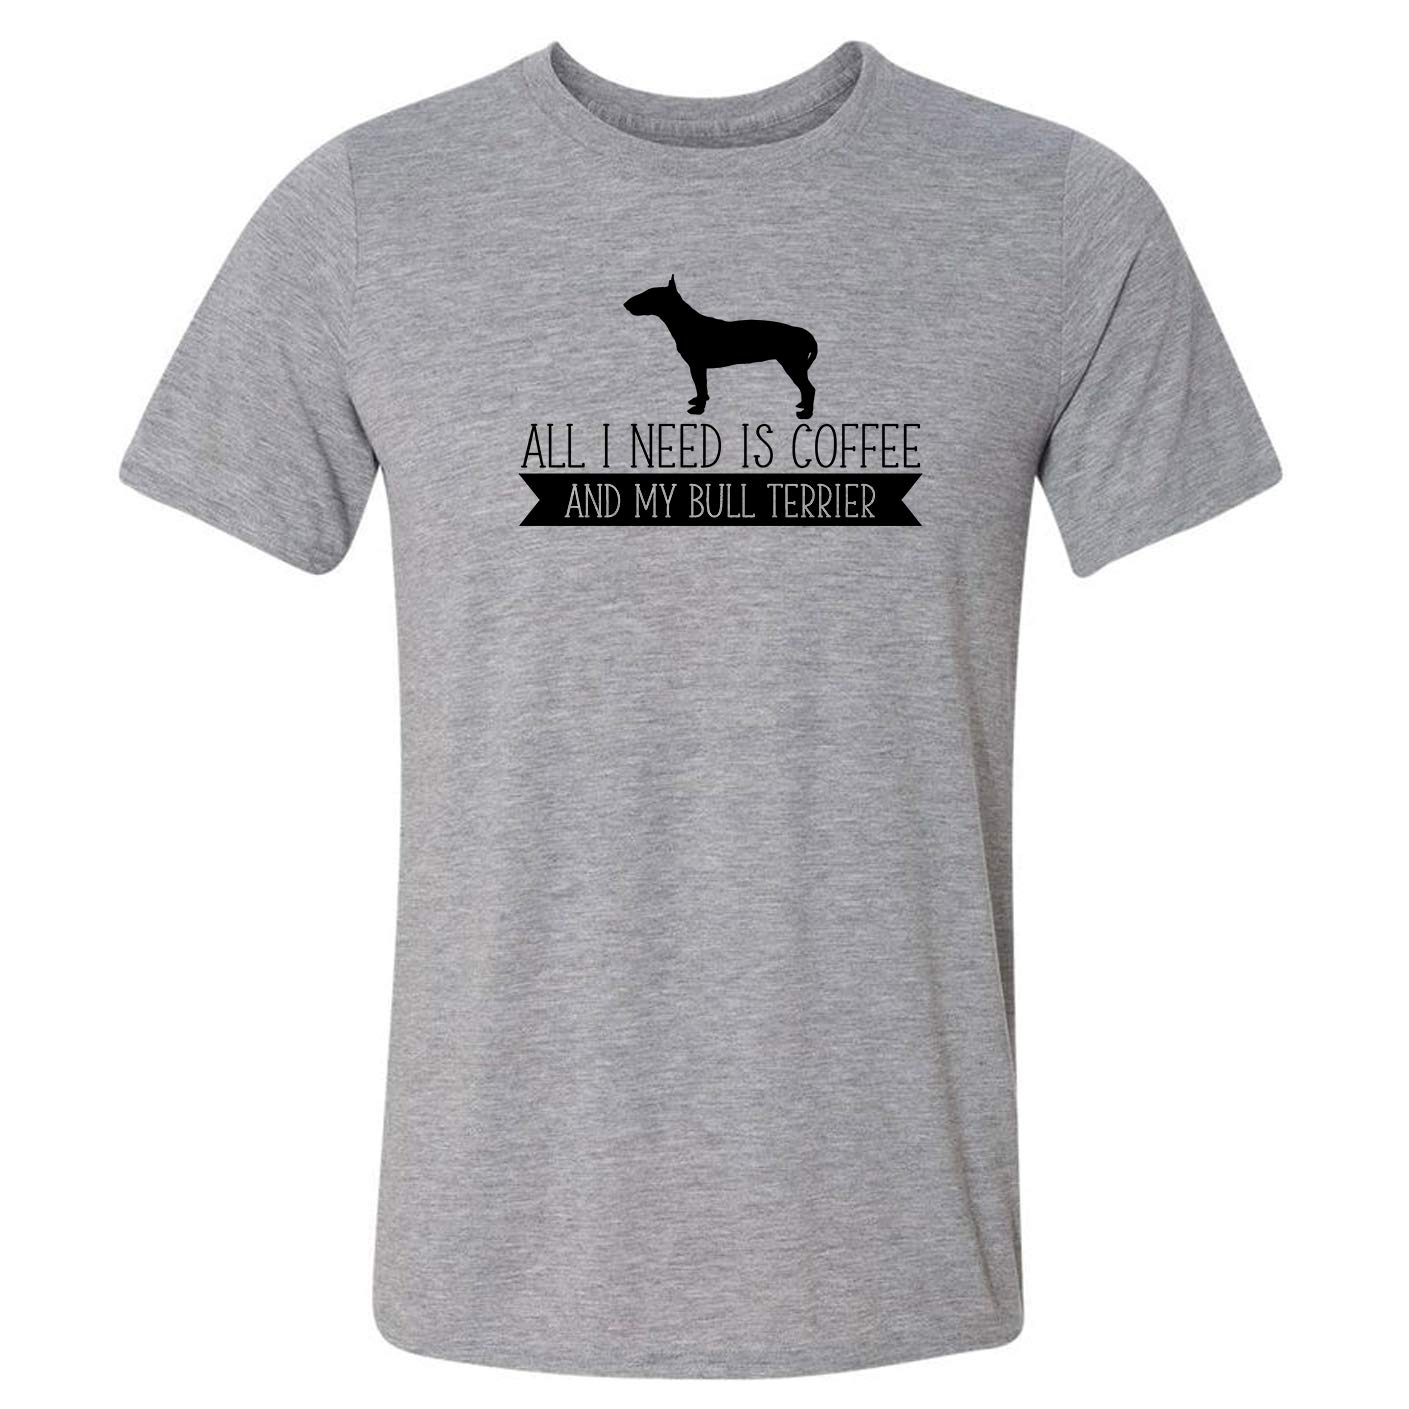 All I Need is Coffee Bull My Terrier T-Shirt Cheap super special price 2021 spring and summer new and